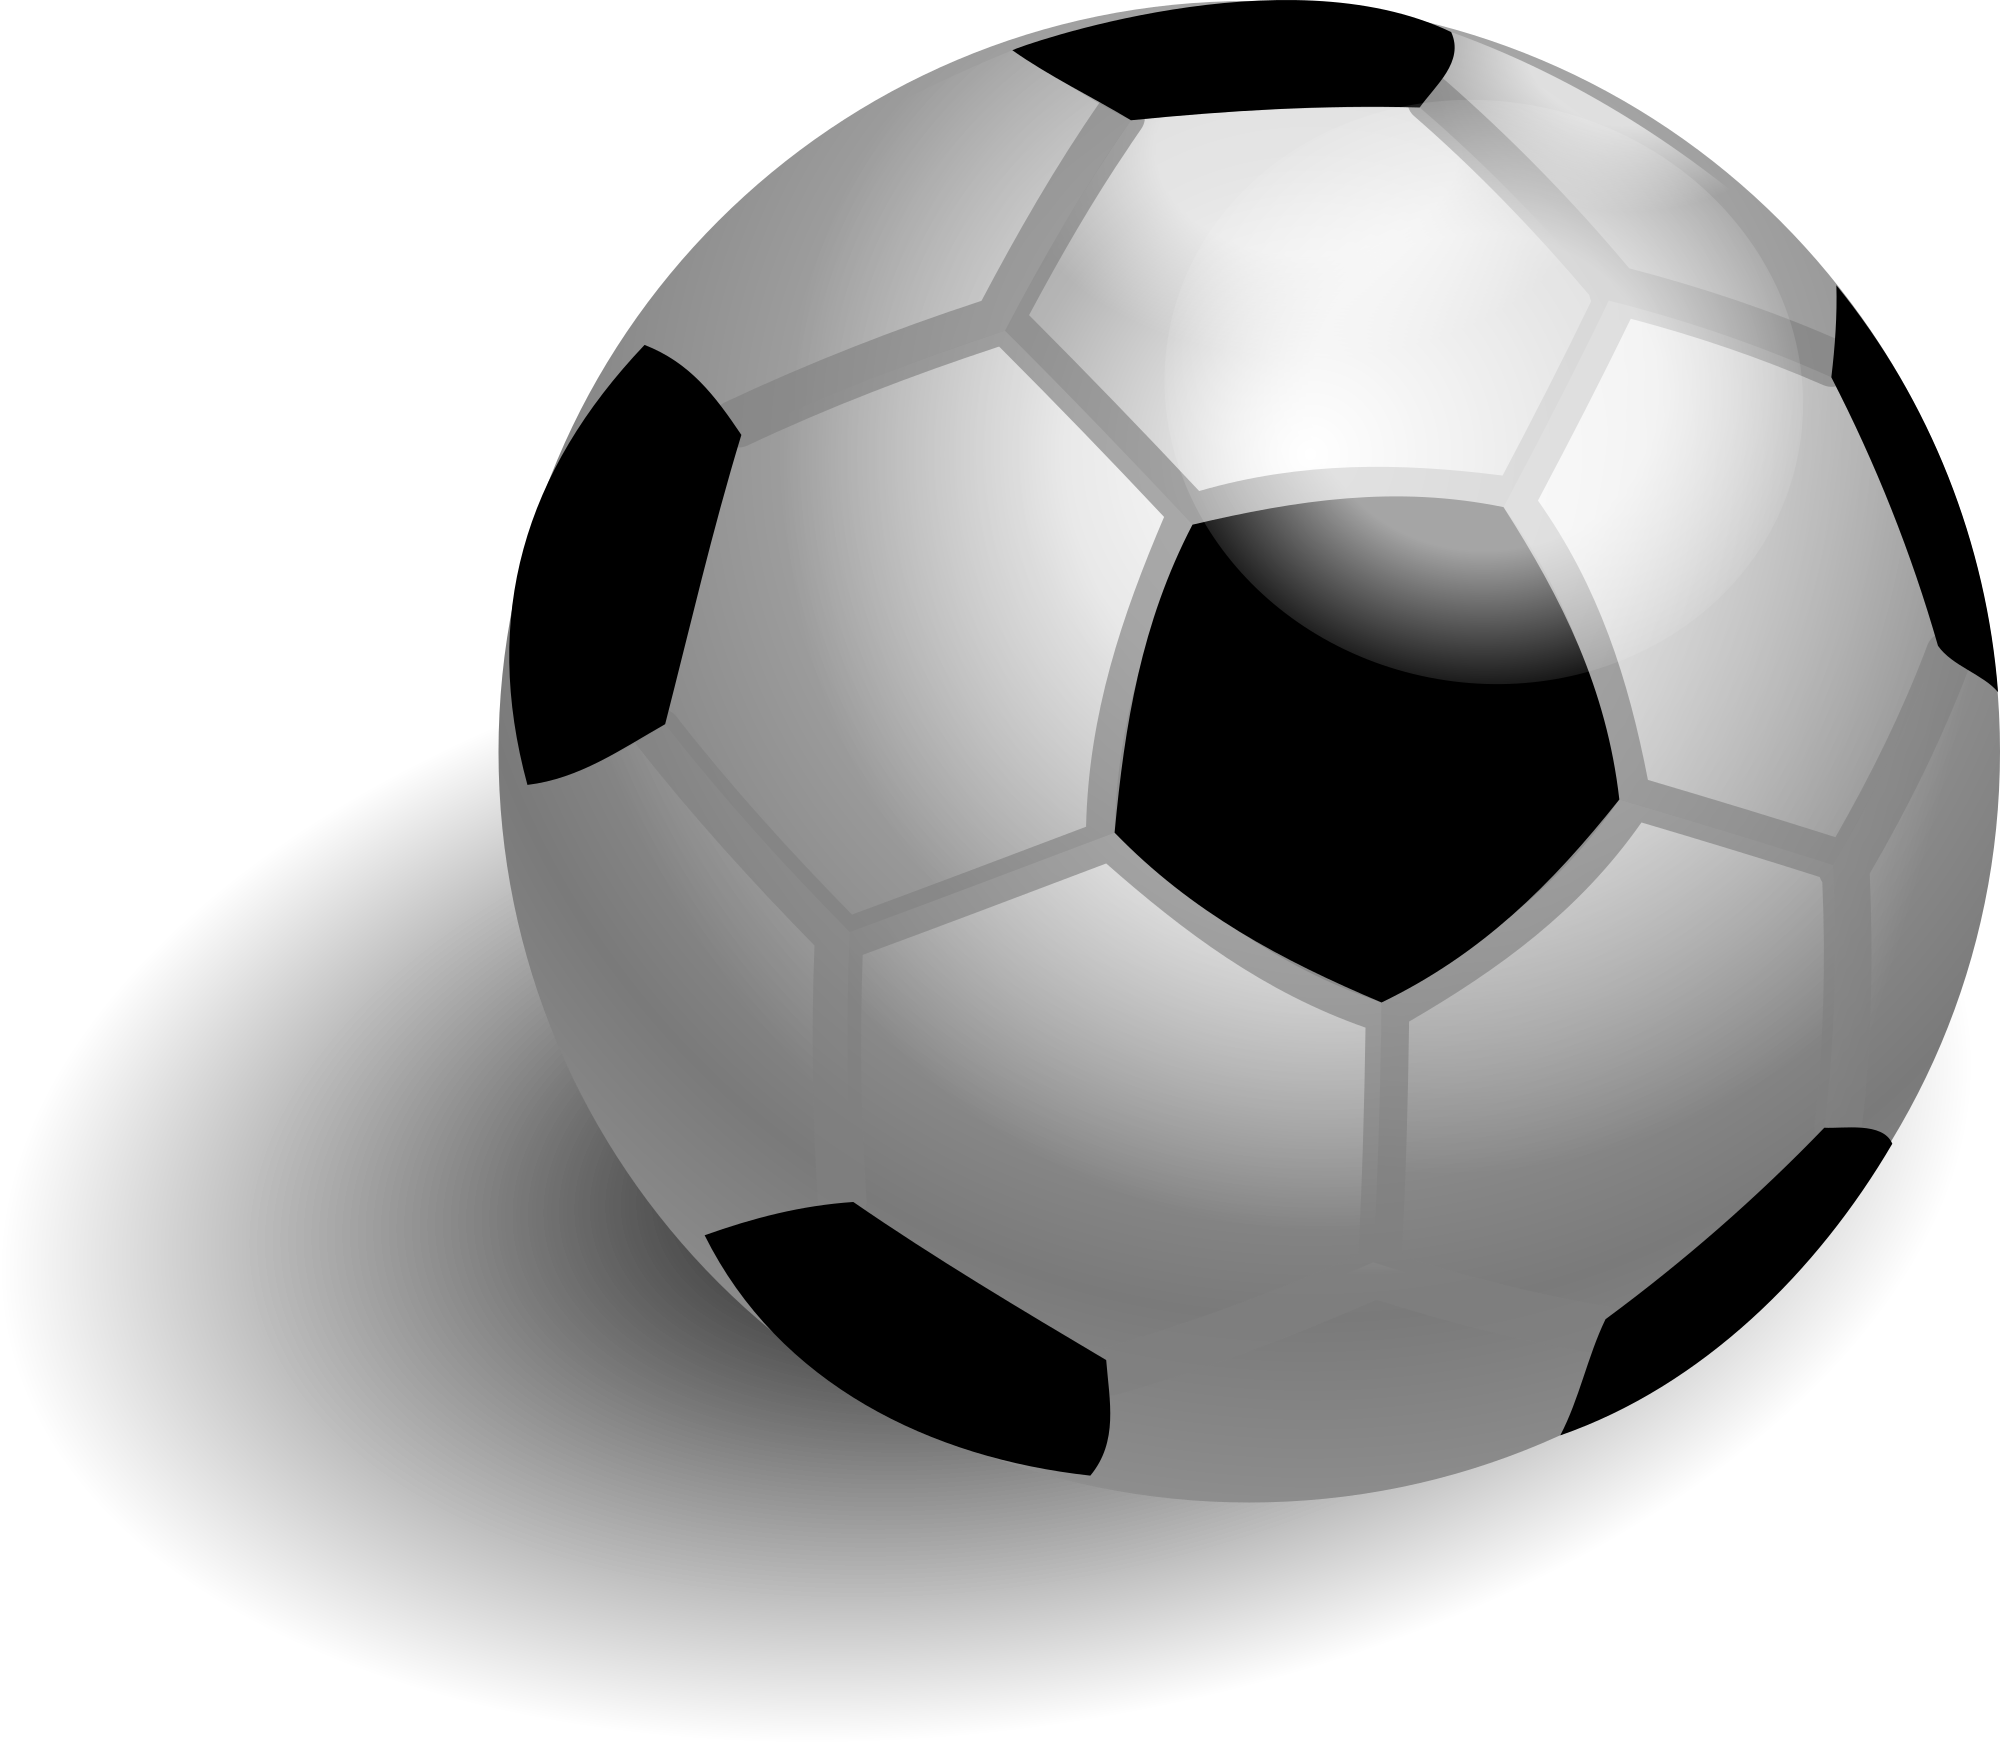 Free soccer ball with shadow clipart clipart and vector image 2